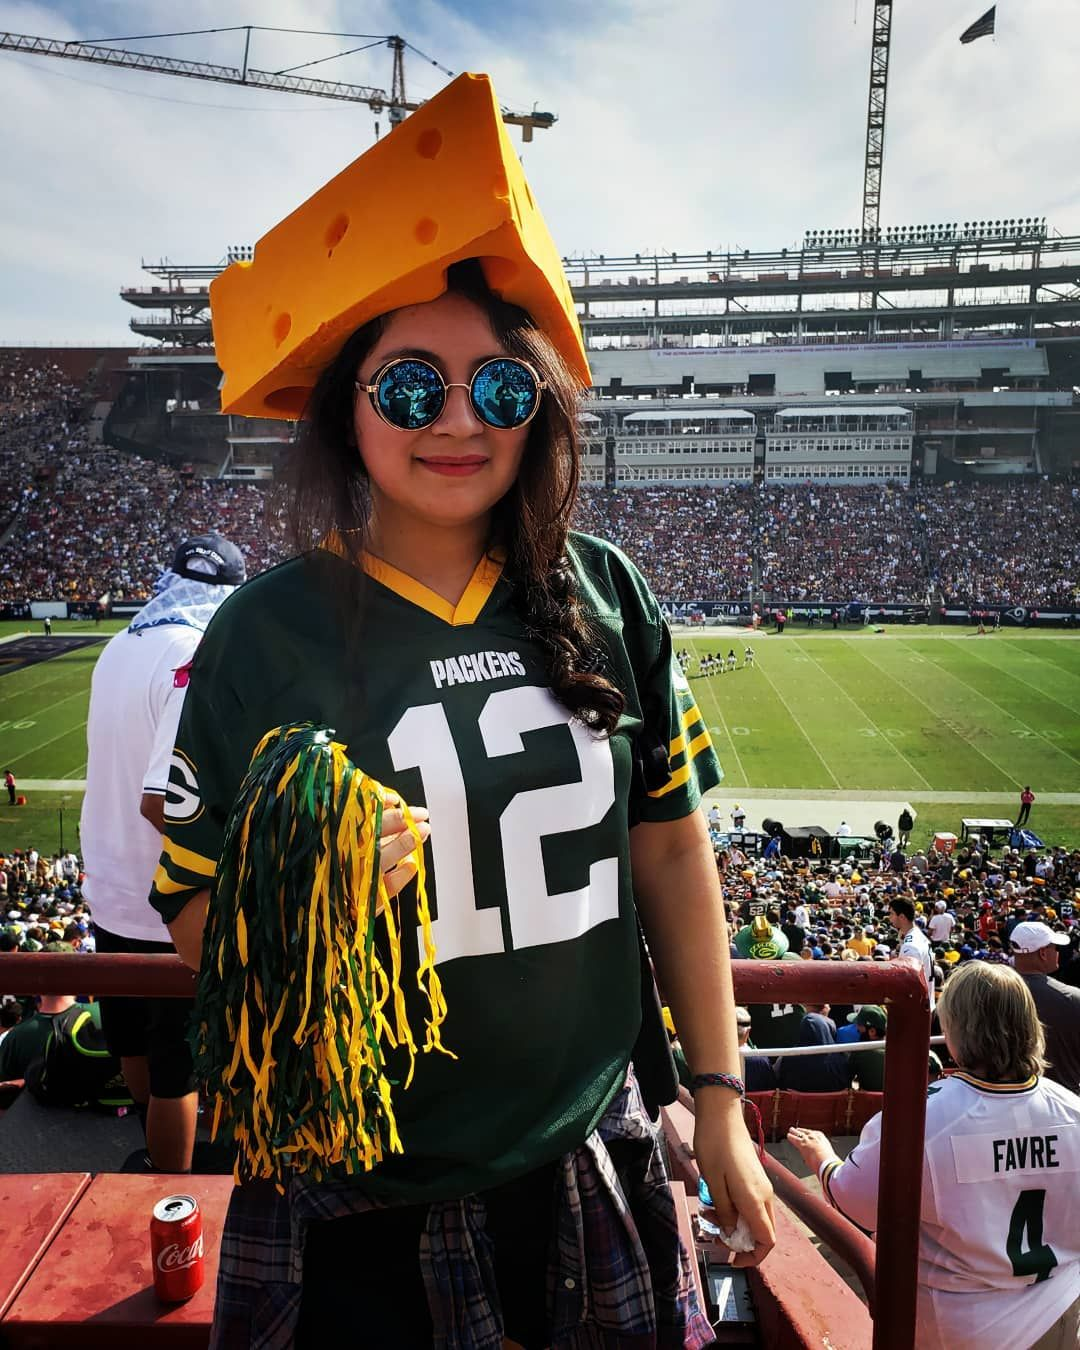 "look at that cute cheesehead!""-a packers fan #greenBAE #greenbay ..."